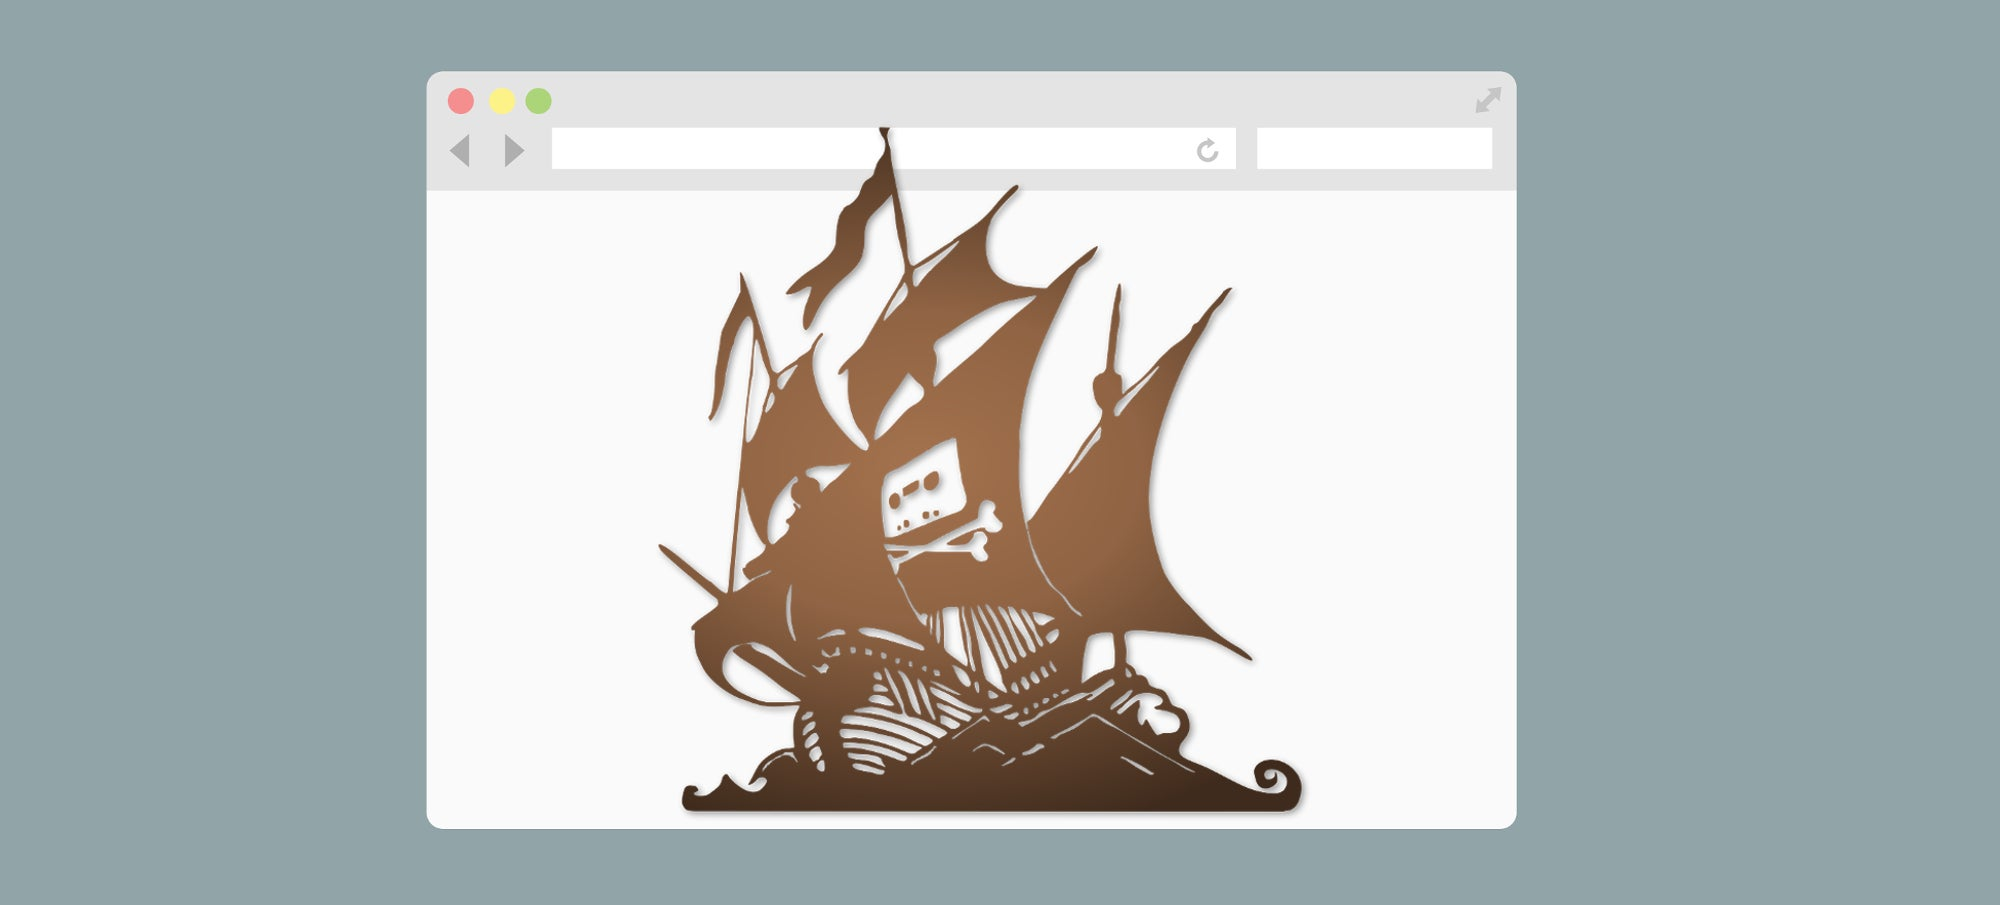 Now You Can Stream Torrents From The Pirate Bay in Your Browser